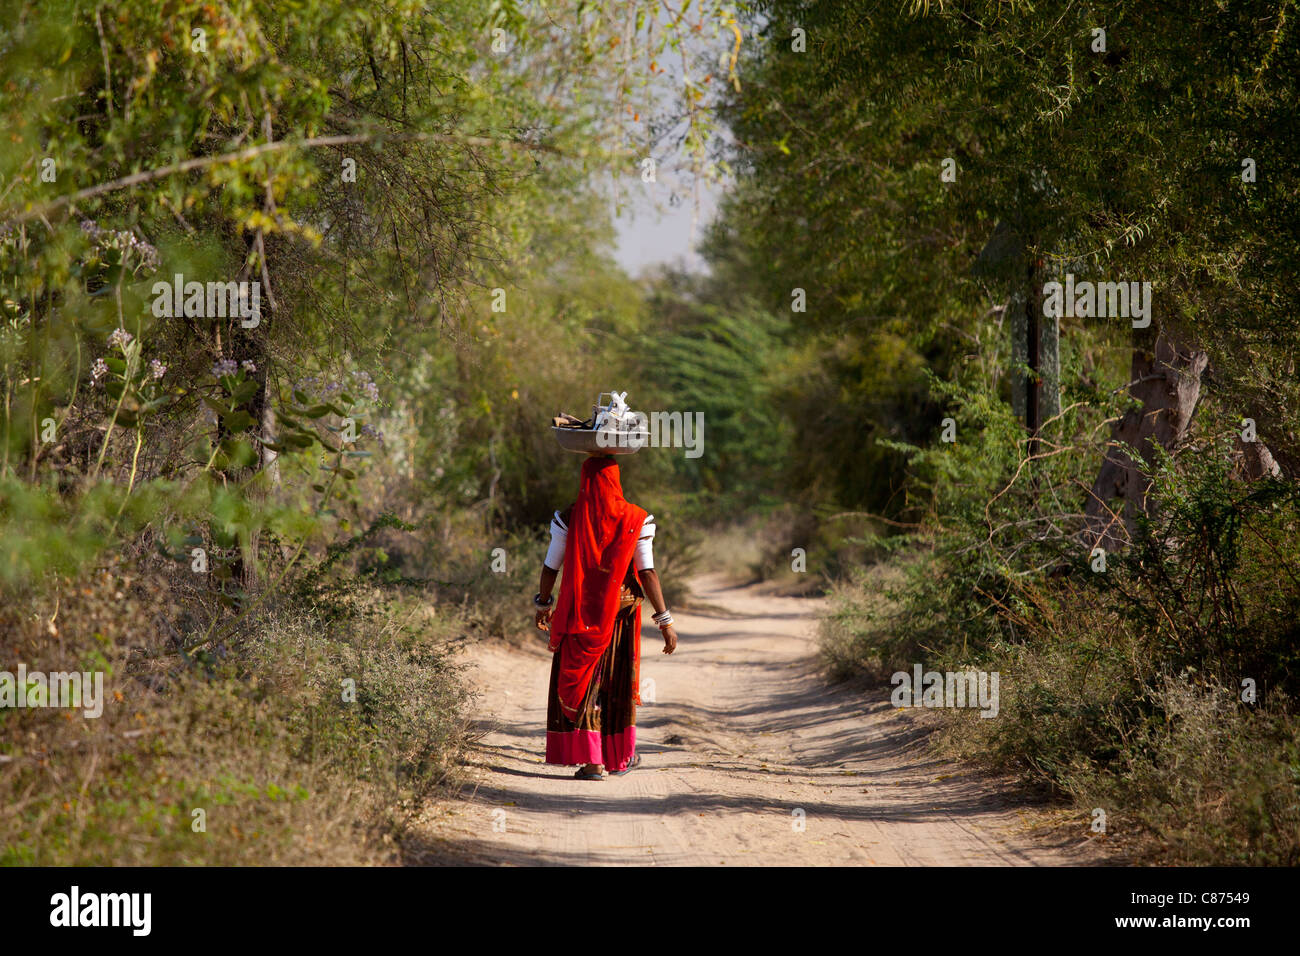 Indian Bishnoi woman carrying bowl for lunch for agricultural workers near Rohet in Rajasthan, Northern India - Stock Image